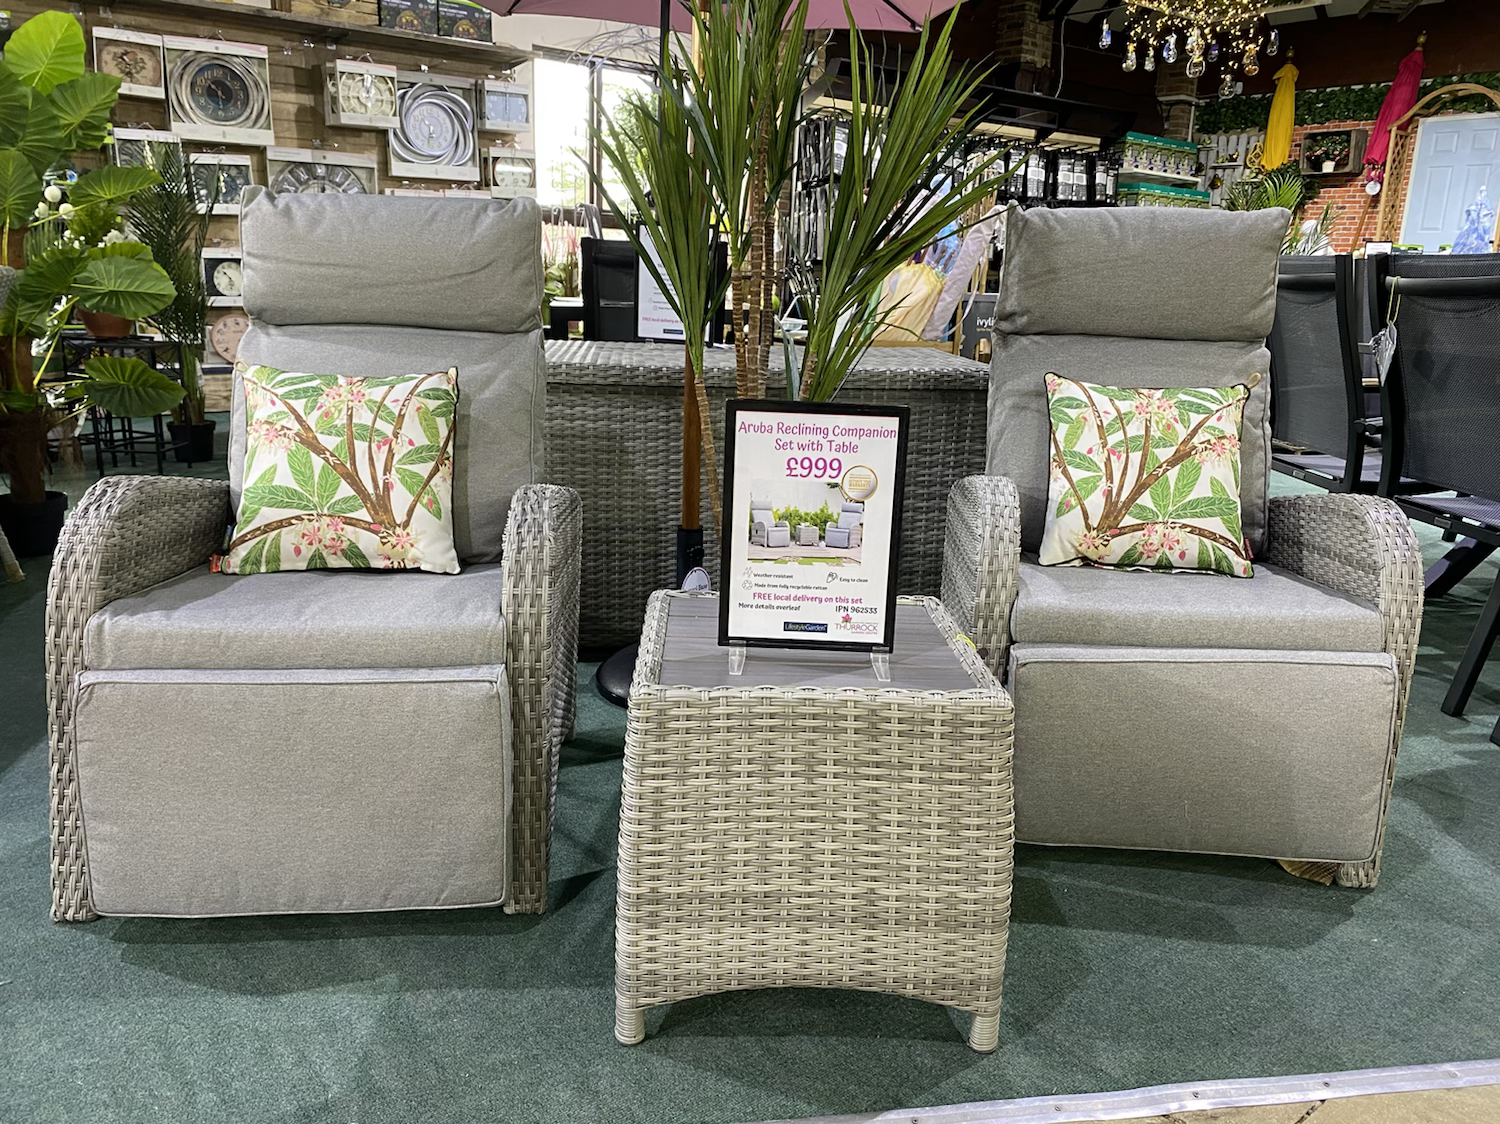 LAST ONE Aruba Reclining Companion Set with Table - £999